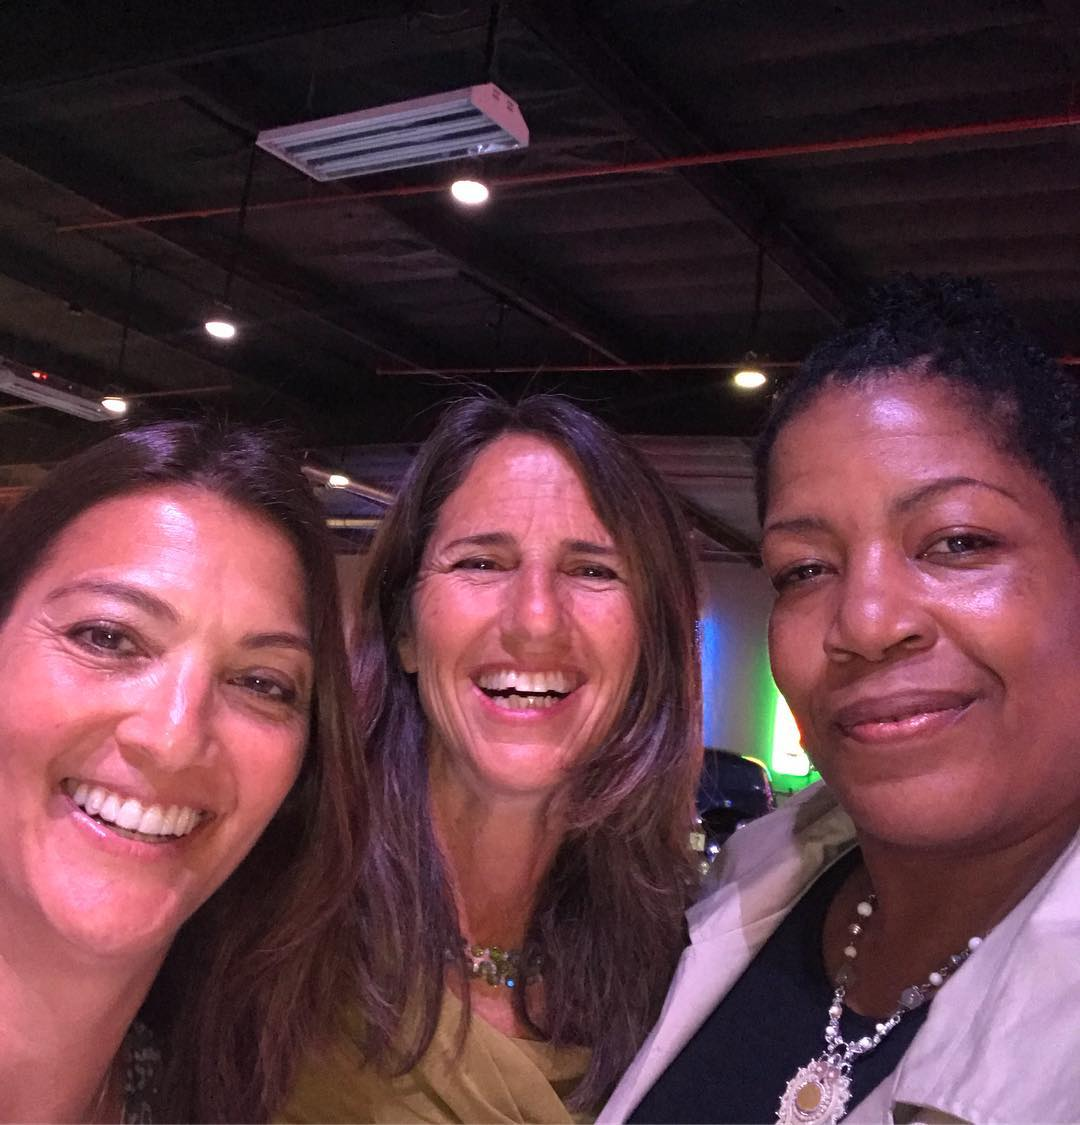 Beach and Indoor Olympian Liz Masakayan, UCLA middle blocker legend Merja Connolly and Coach April, former National Team and World University Game teammates